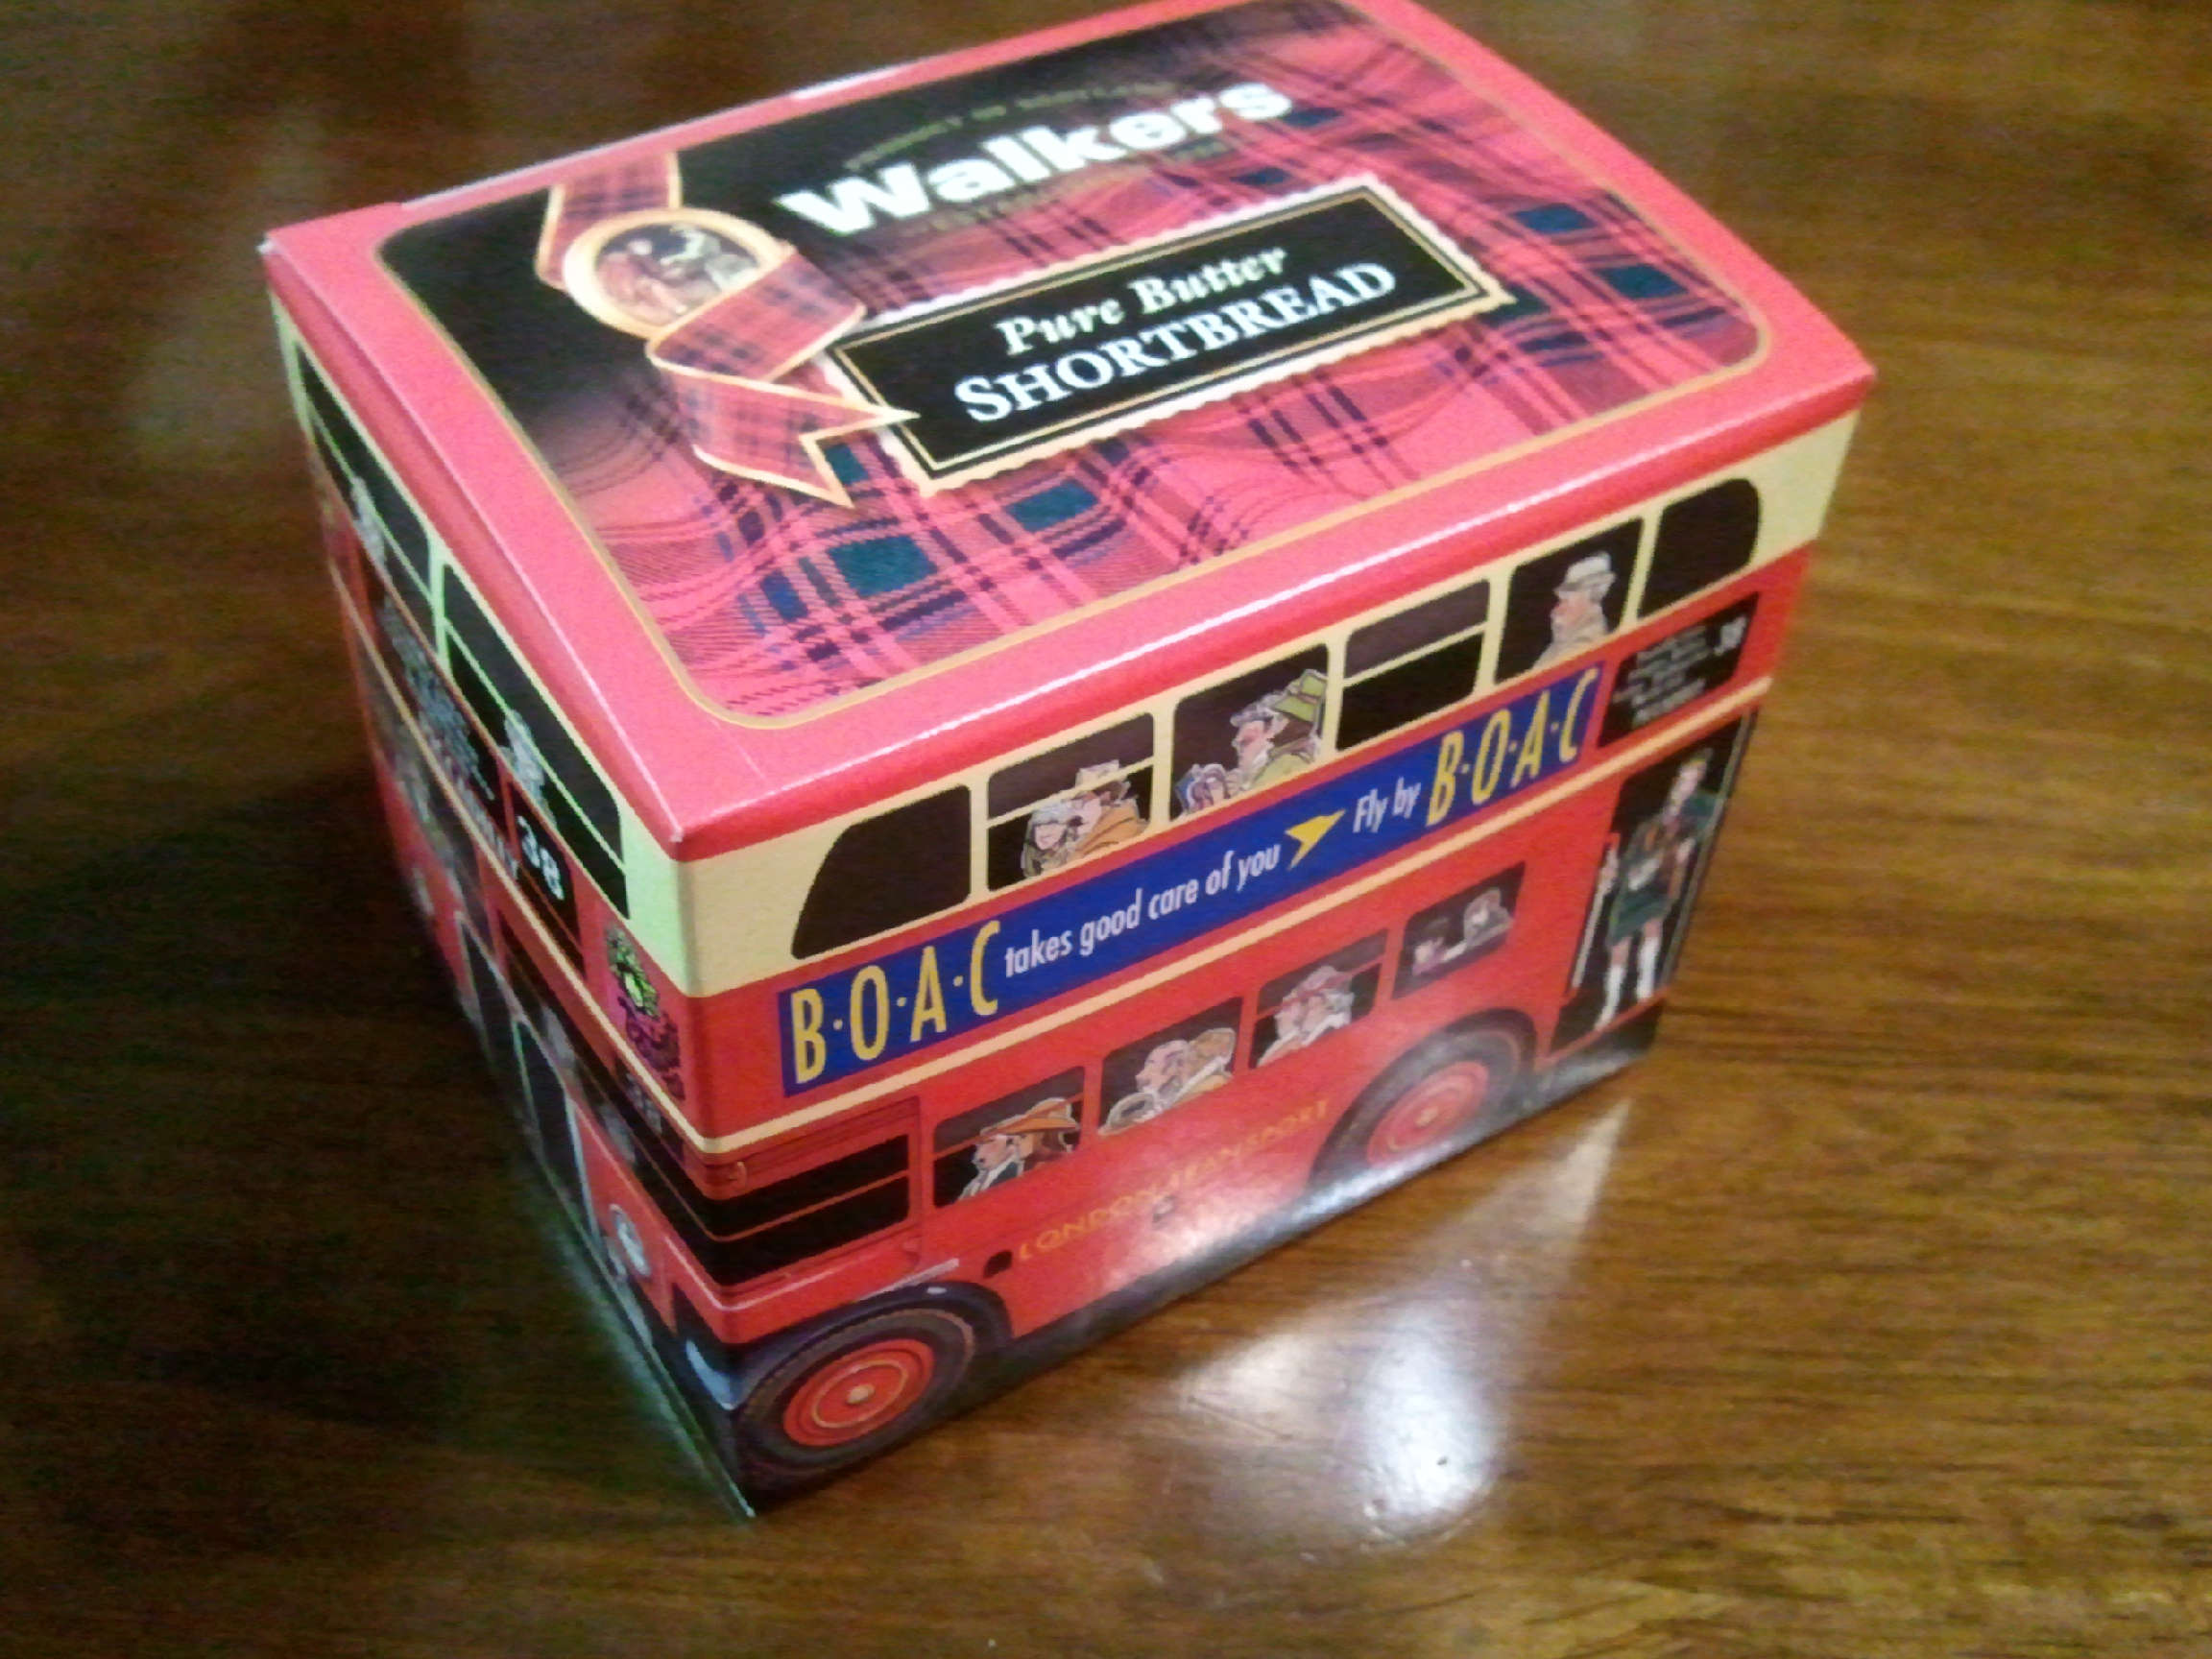 Walkers Pure Butter Shortbread Double Deck Bus